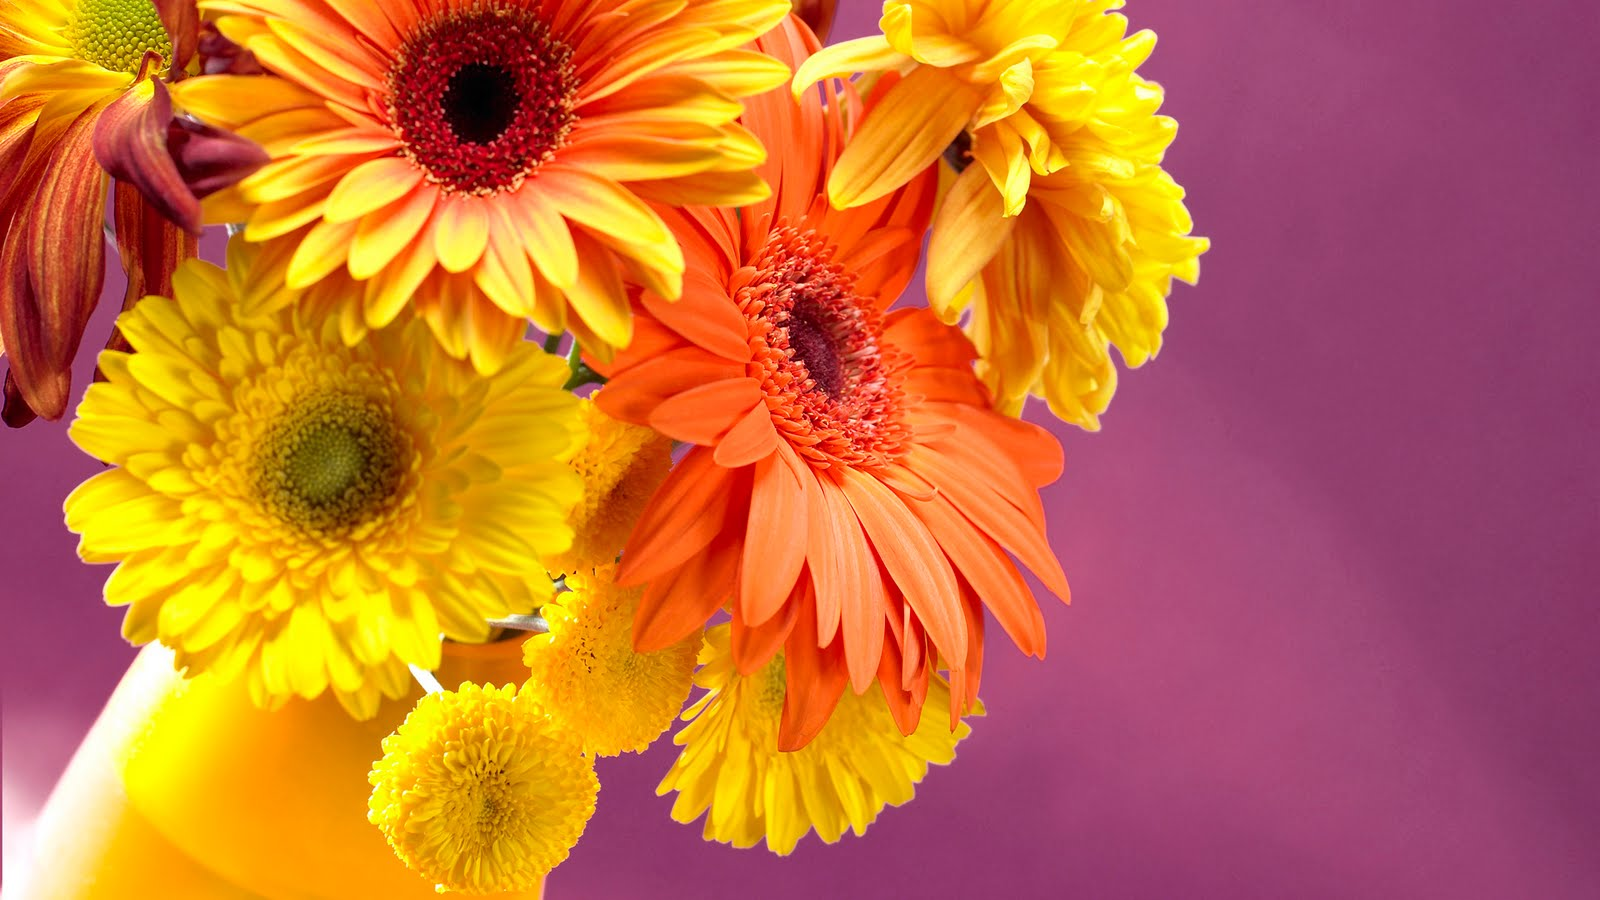 Free Colorful Flower Wallpaper Downloads: Jaspreet Rekhi: 40 Colorful Flowers Wallpapers Full HD